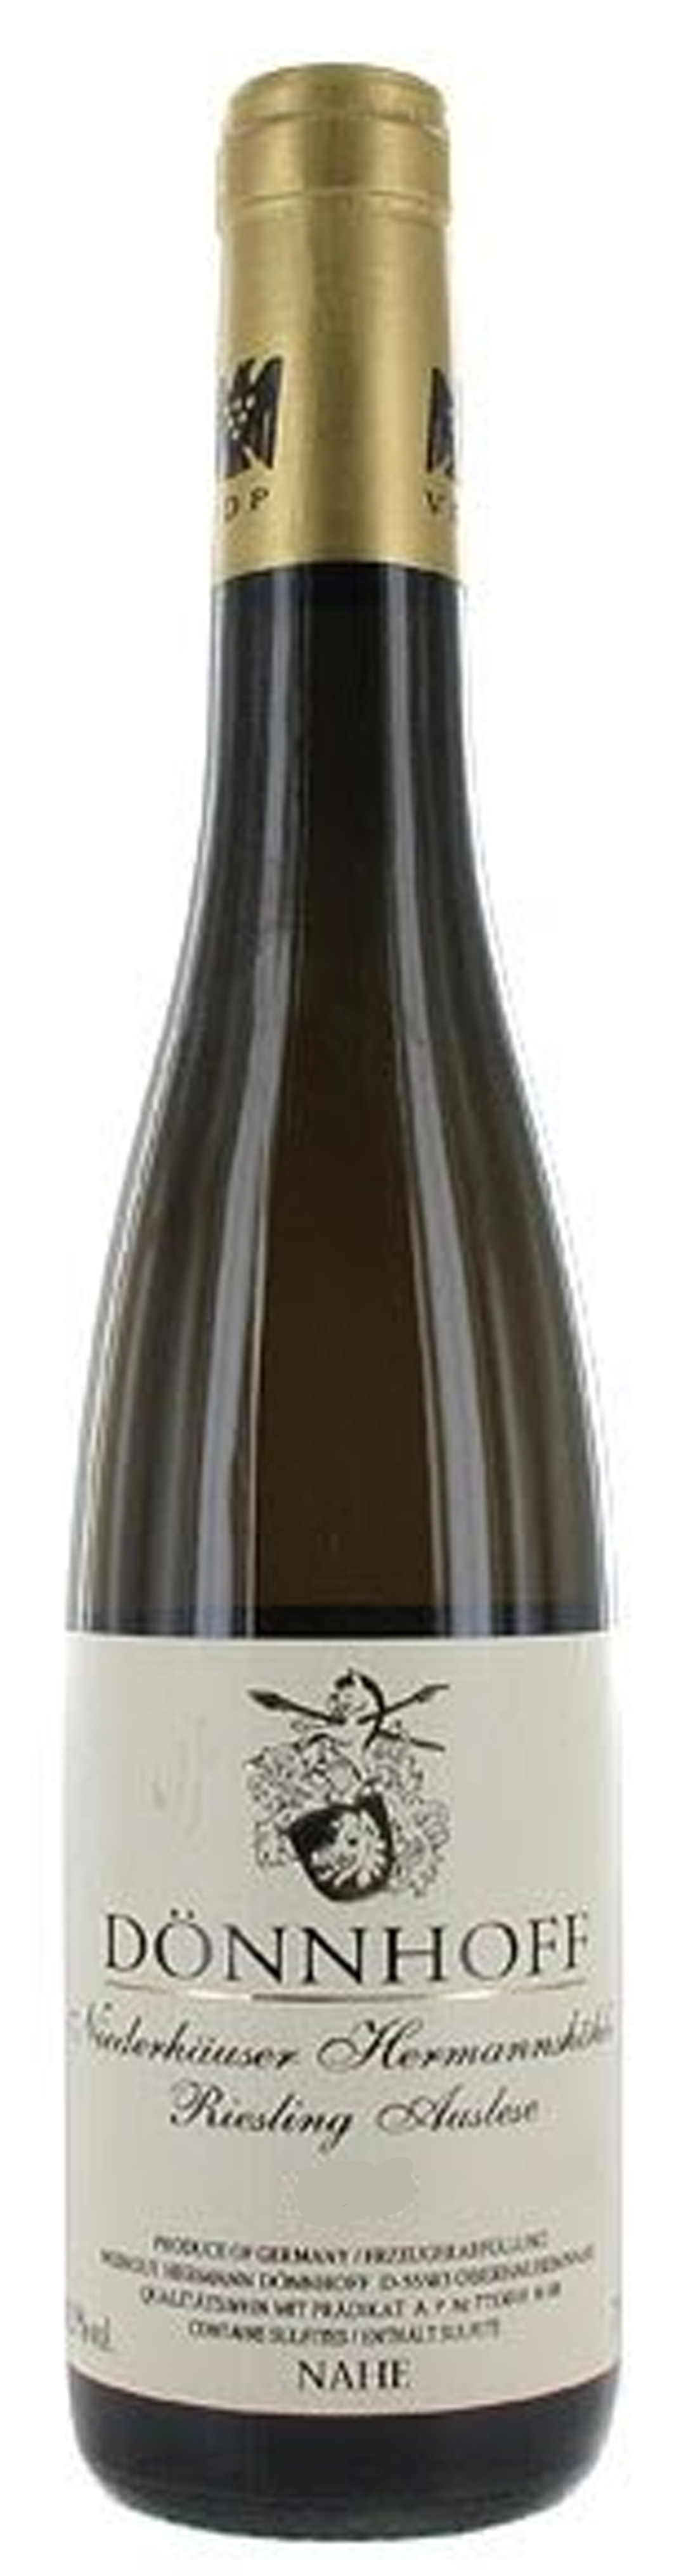 Image of product Neiderhauser Hermannshöhle Riesling Aus Gold Cap